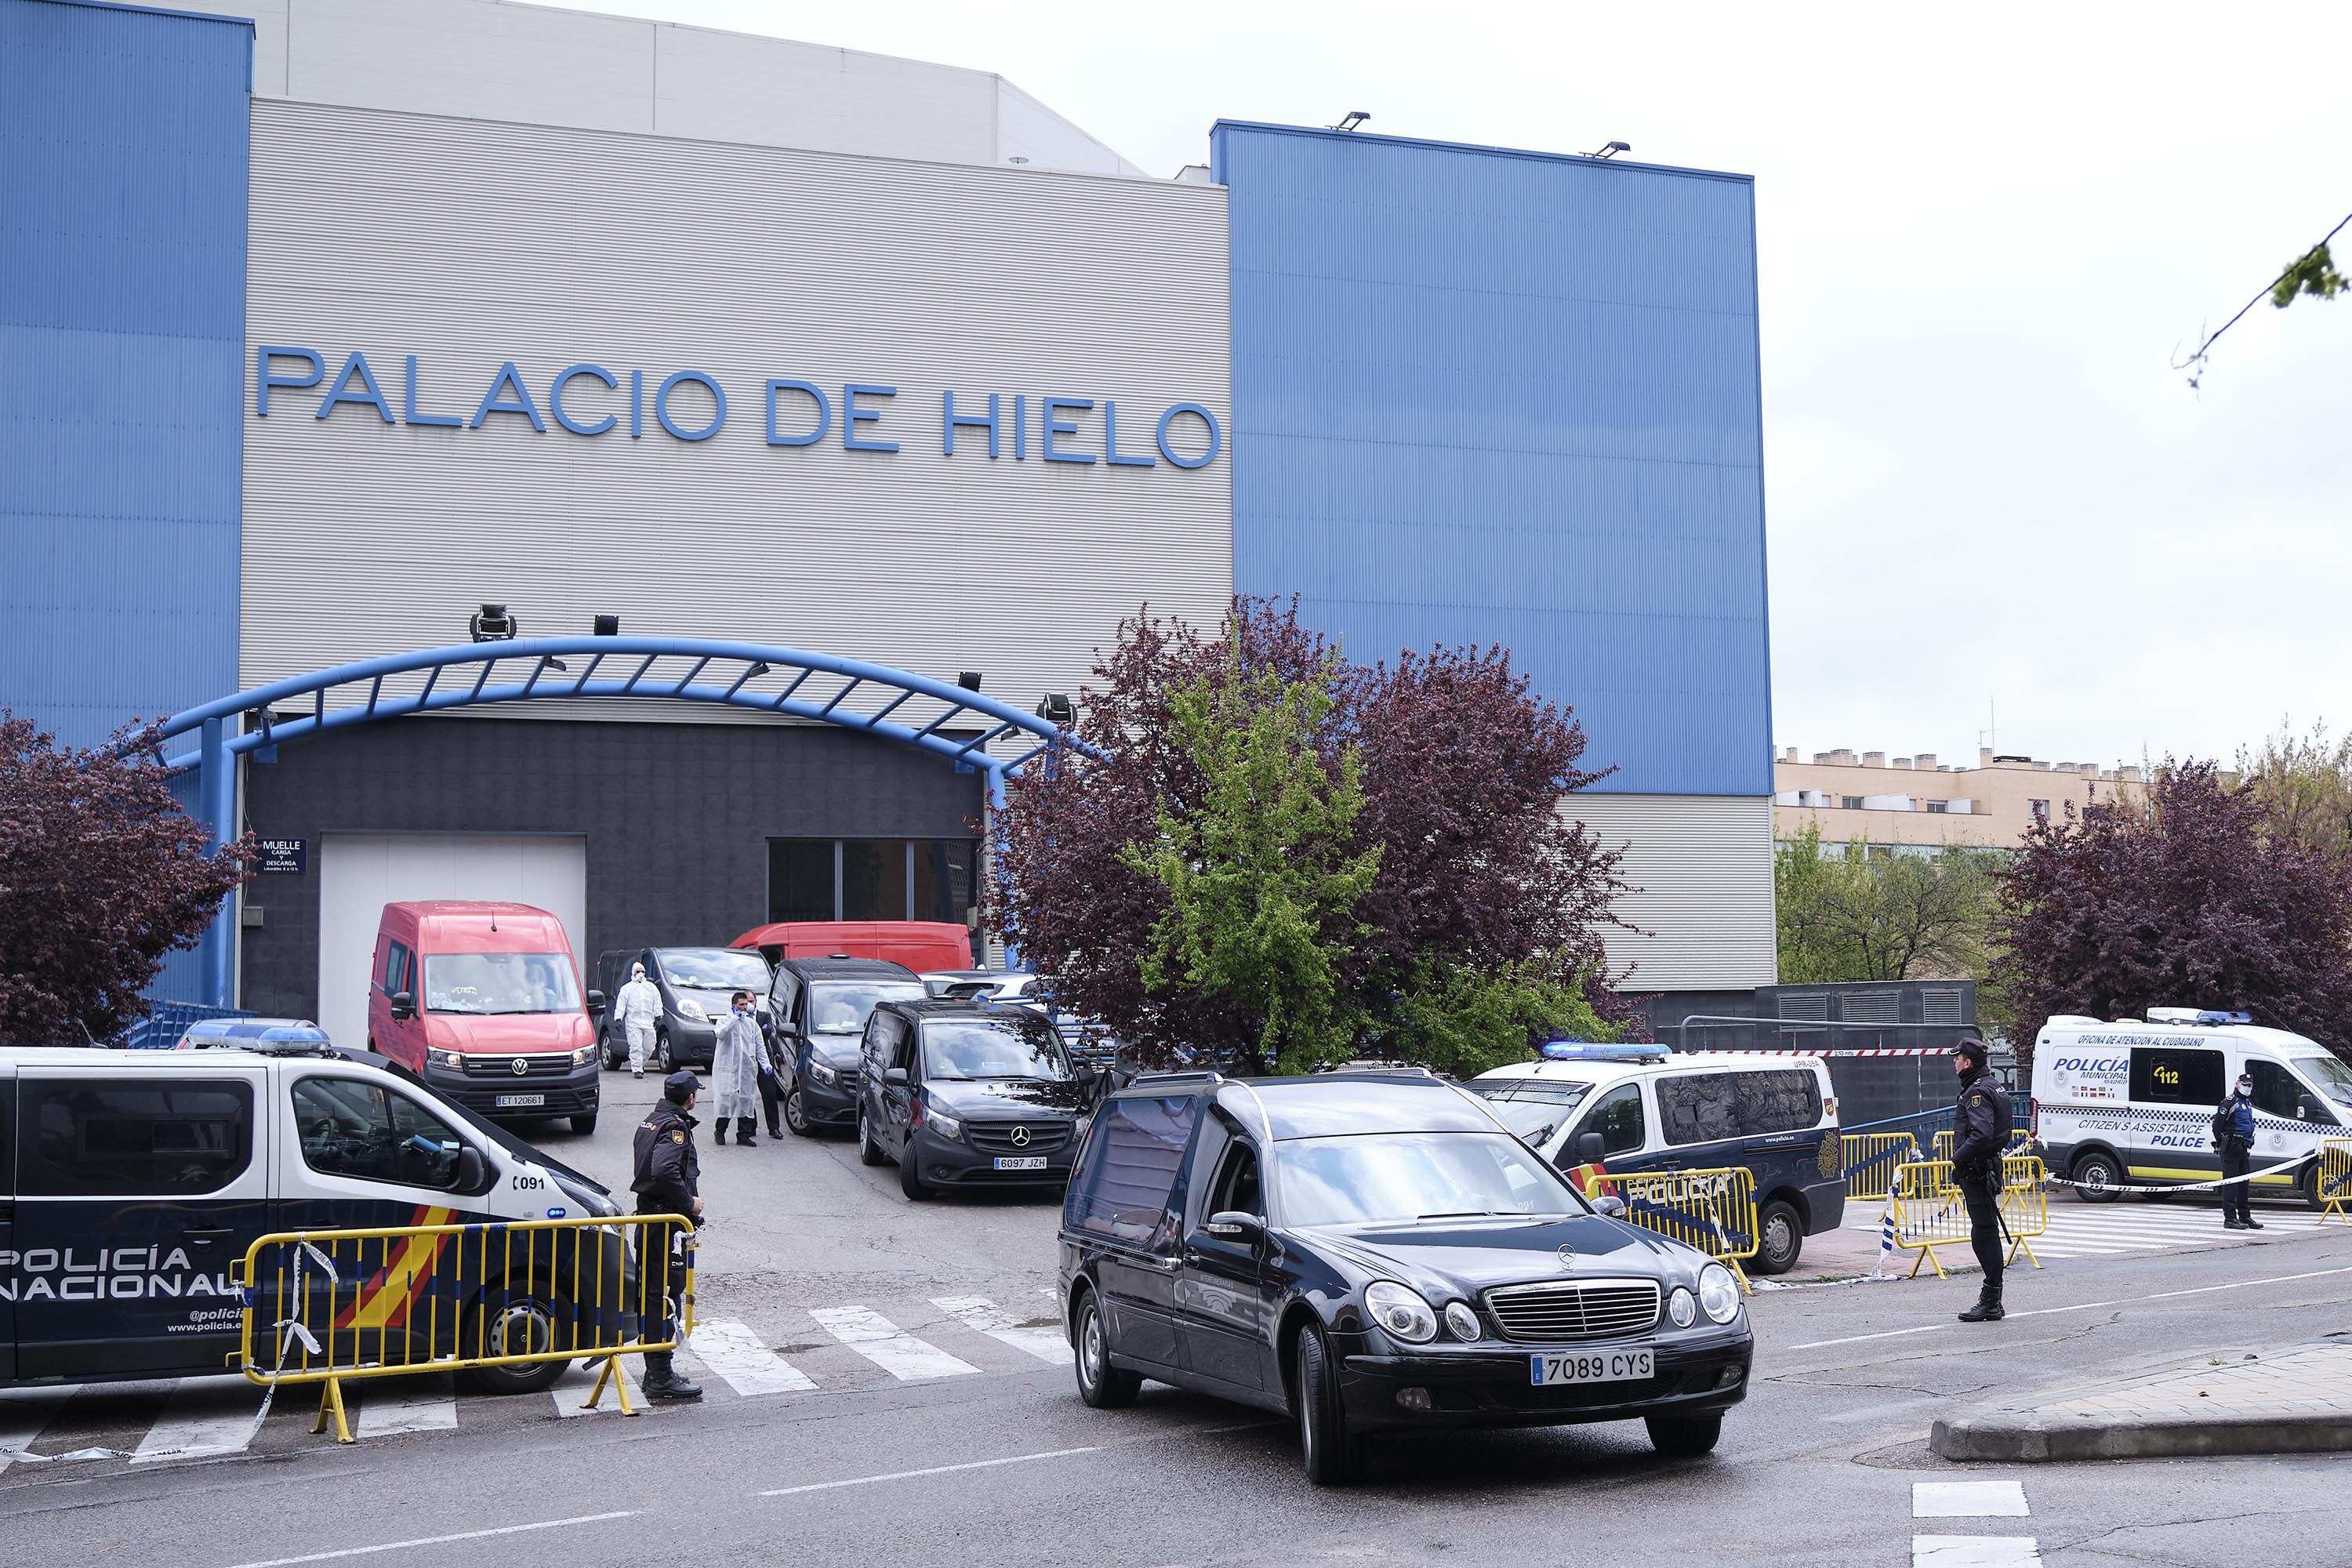 Funeral cars and vans wait outside the Palacio de Hielo in Madrid, Spain, on March 27, where coronavirus victims' bodies are kept at an ice rink temporarily converted into a morgue.